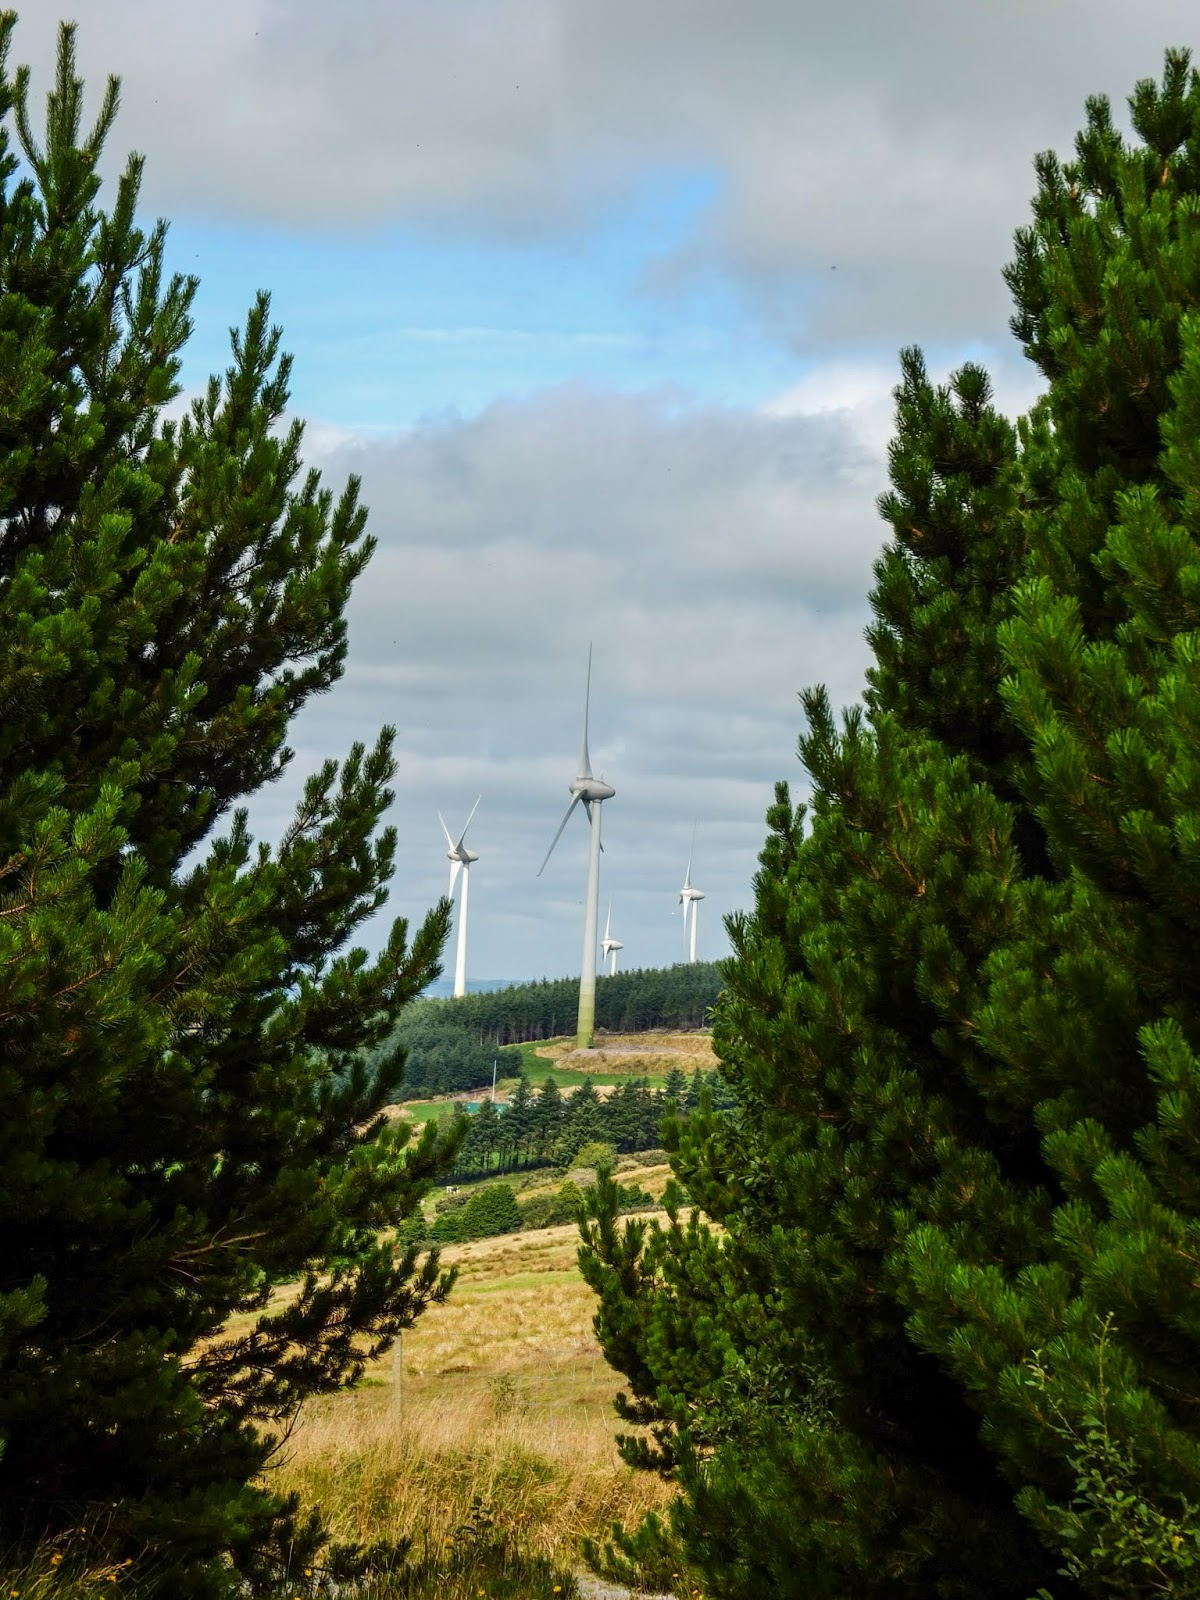 A view of a windmill between two coniferous trees in the Boggeragh Mountains, Co.Cork.